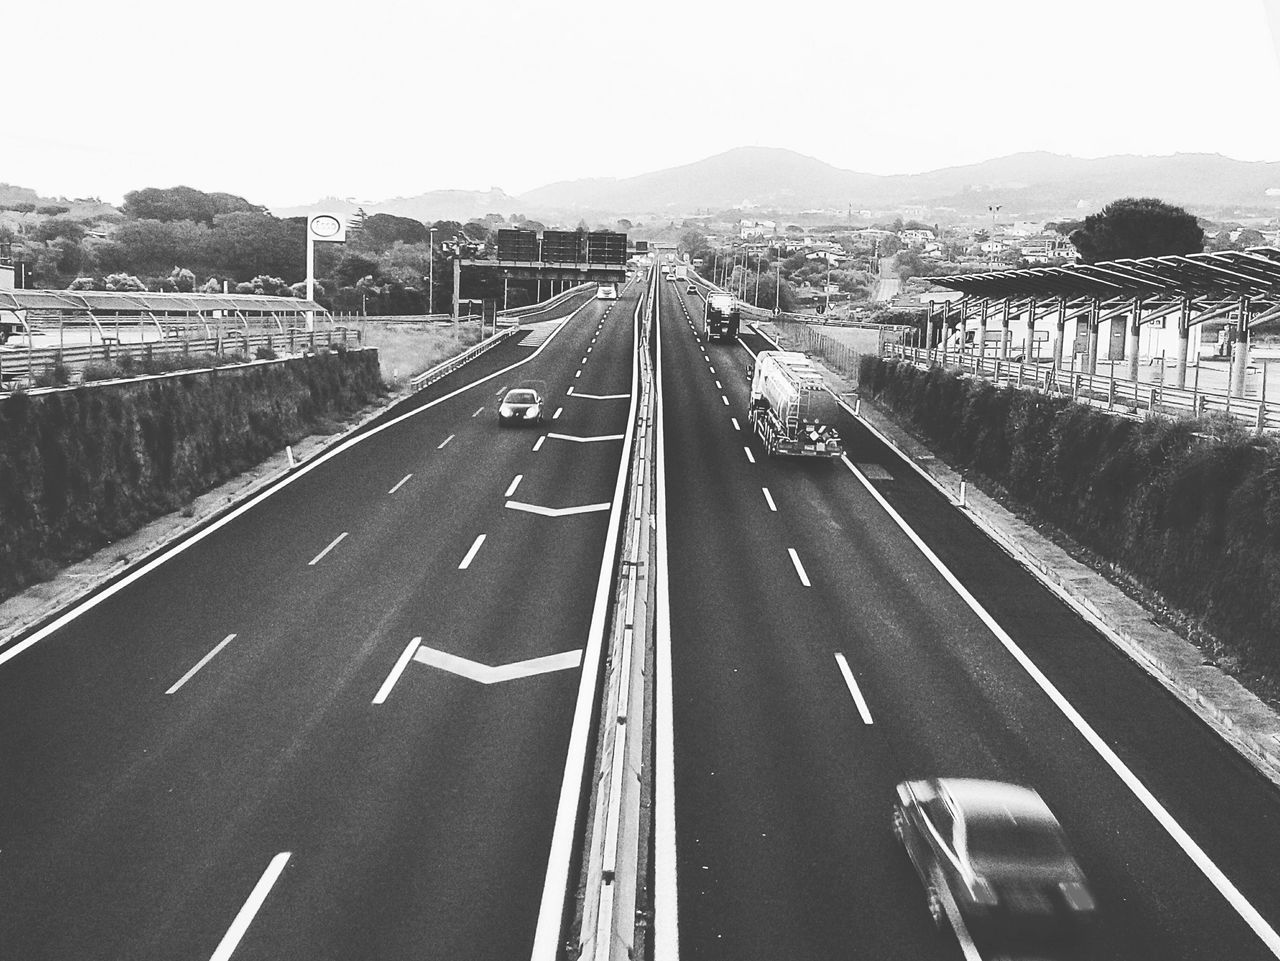 ON THE ROAD Transportation Outdoors Day Clear Sky Sky Photographer Picoftheday Followme Tagsforlikes Photoftheday Photographyislifee Tantebellecose EyeEmNewHere Photography Travel Destinations Landscape No People Blackandwhite Black & White Blackandwhite Photography Black And White Collection  Blackandwhitephoto Blackandwhitephotography Blackandwhitepics Photograph